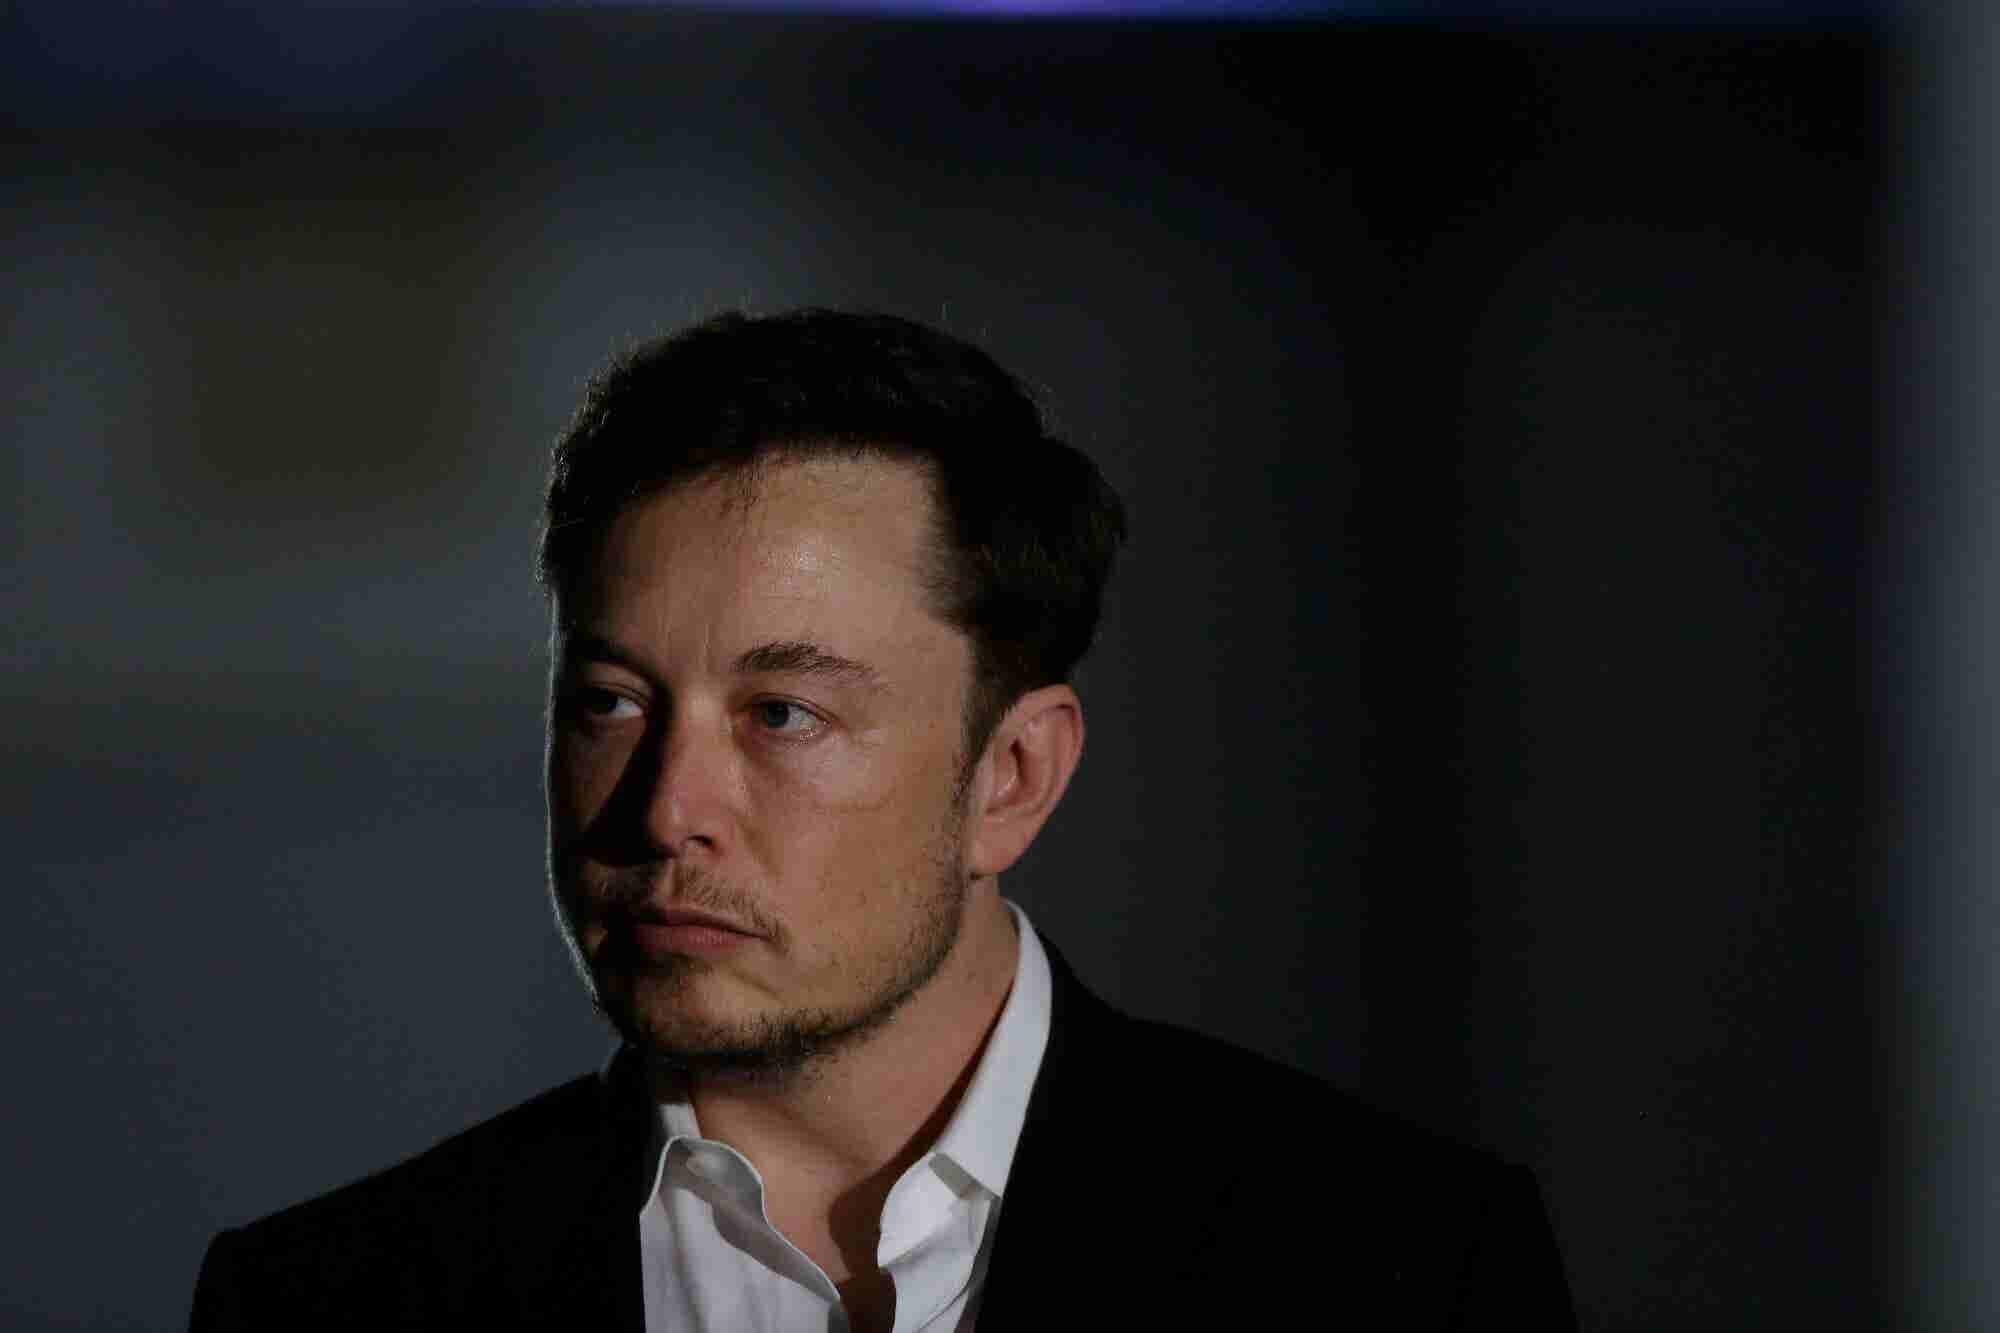 Elon Musk's $20 Million Settlement for Fraud Charges Add to an Increasingly Bizarre Year for the Billionaire